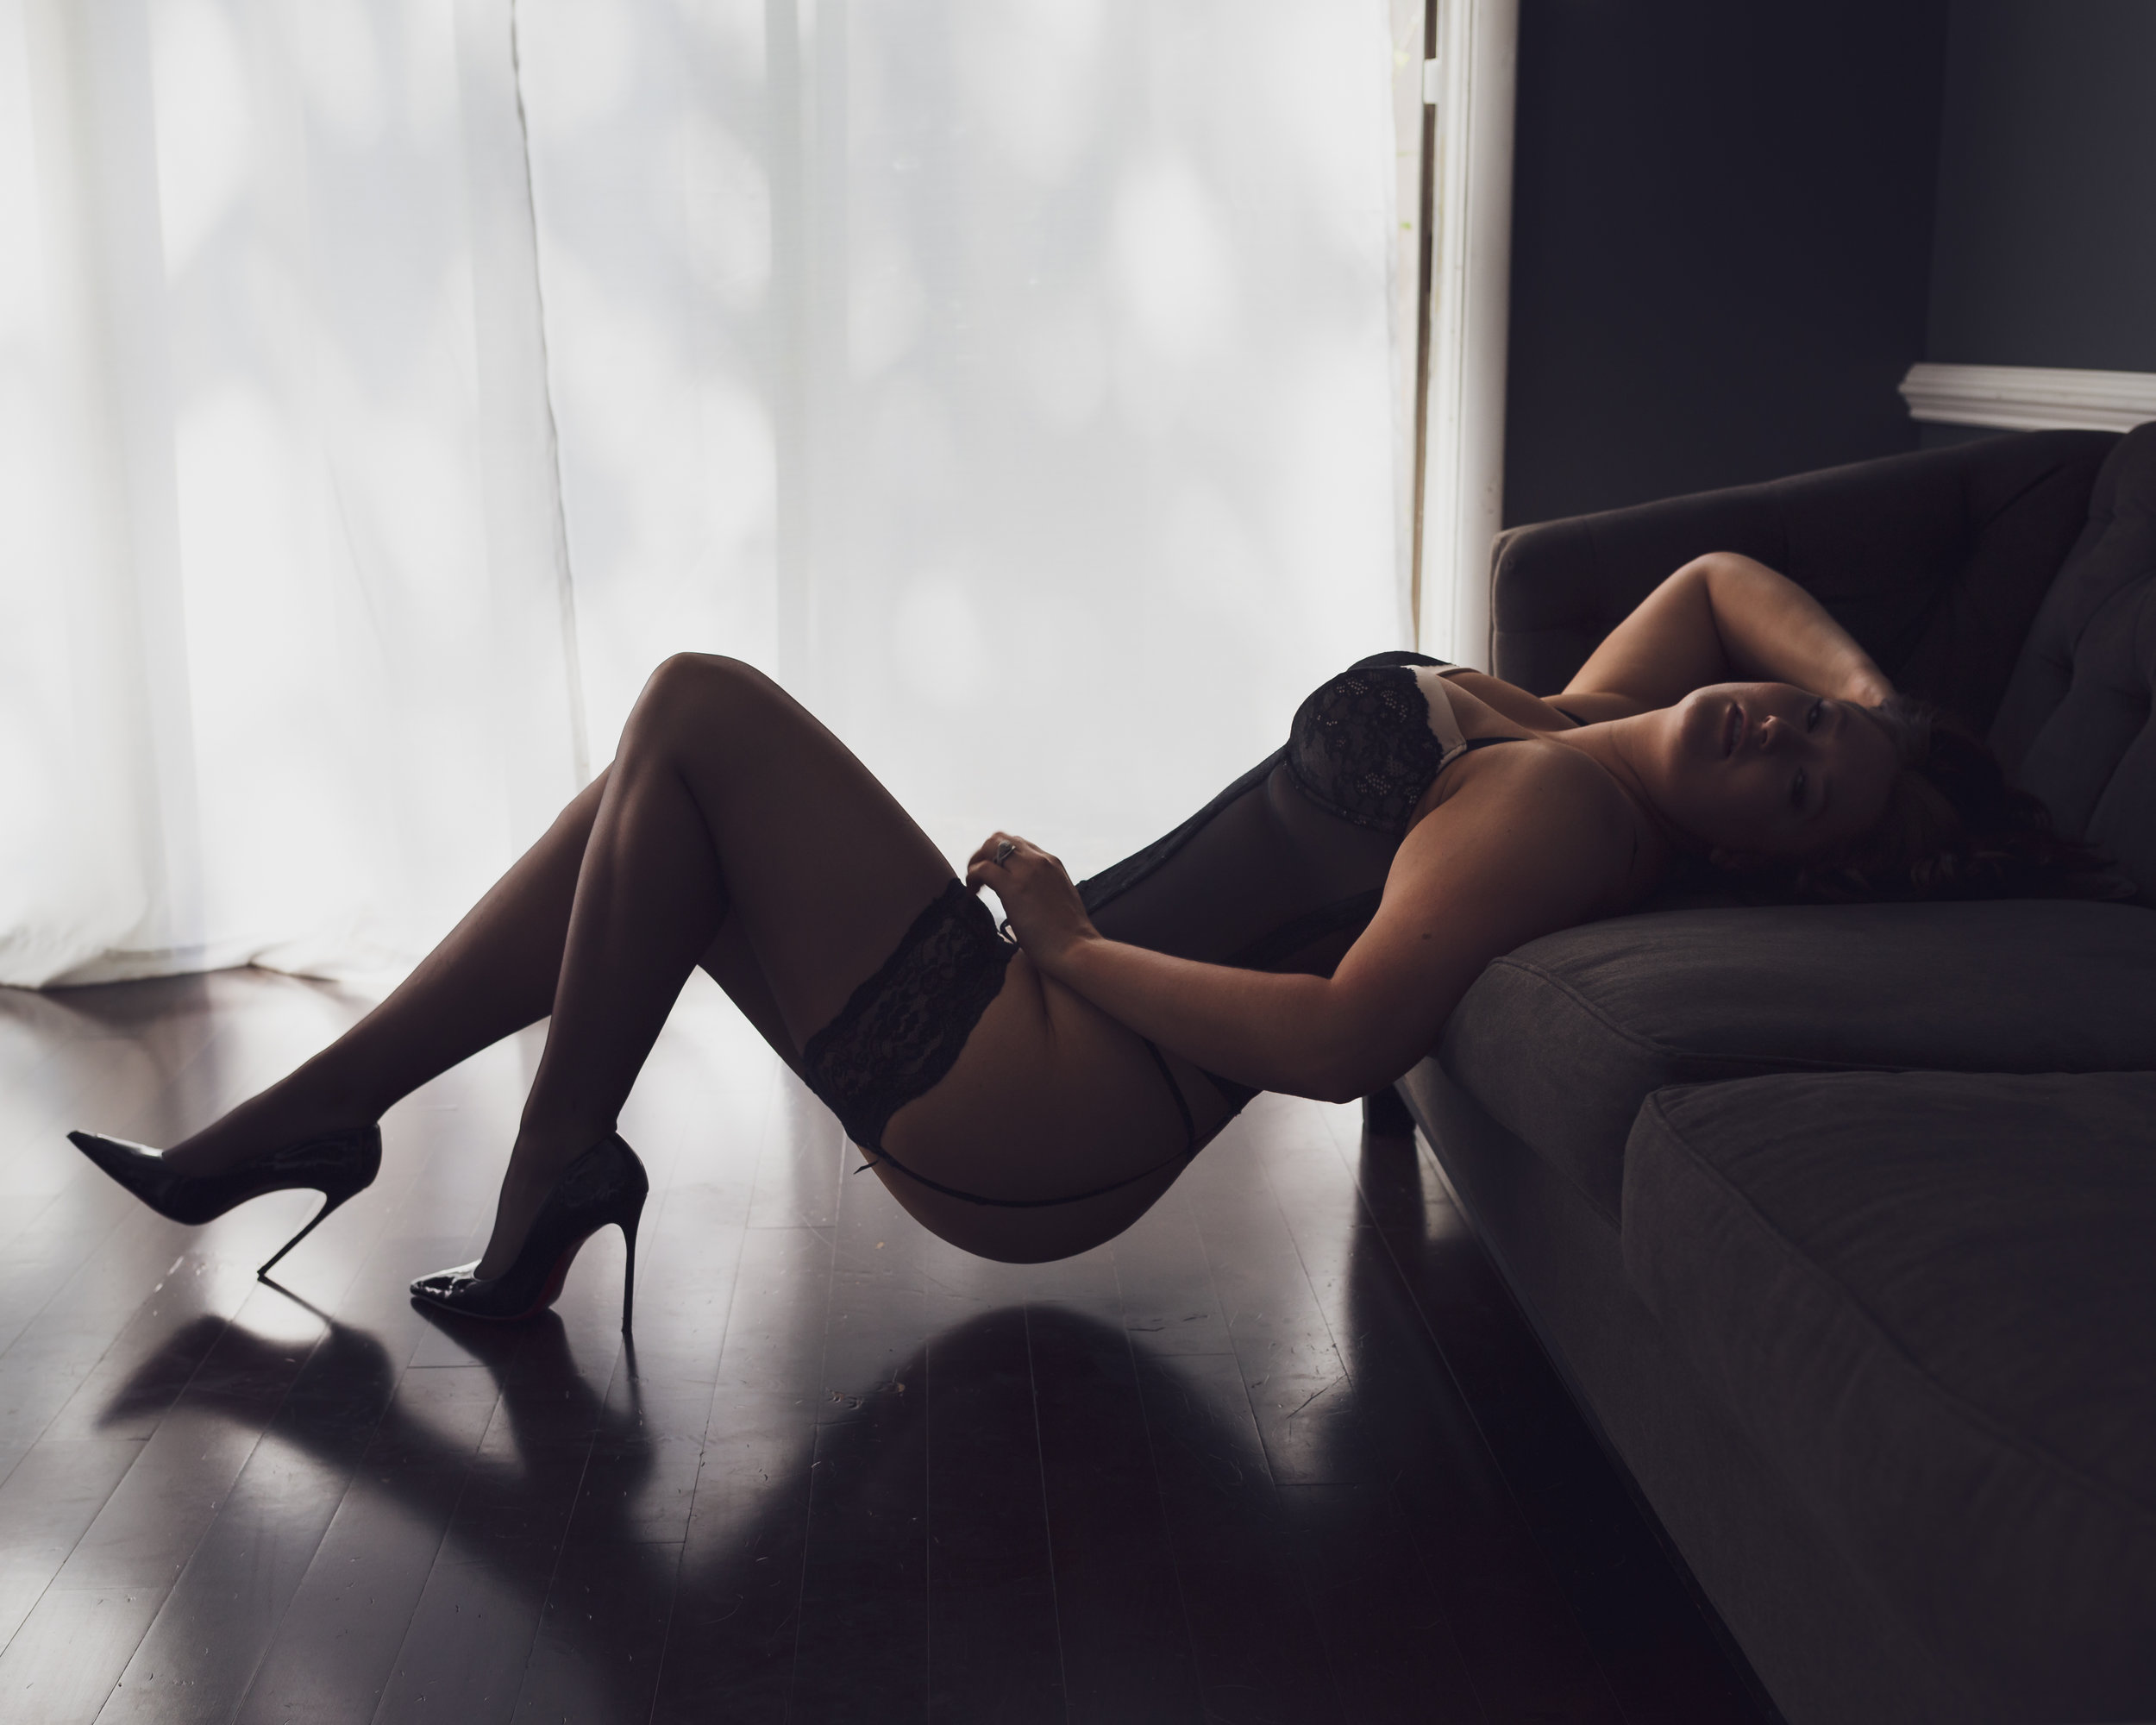 Nine19 Photography Raleigh NC Boudoir Photographer-6302.jpg